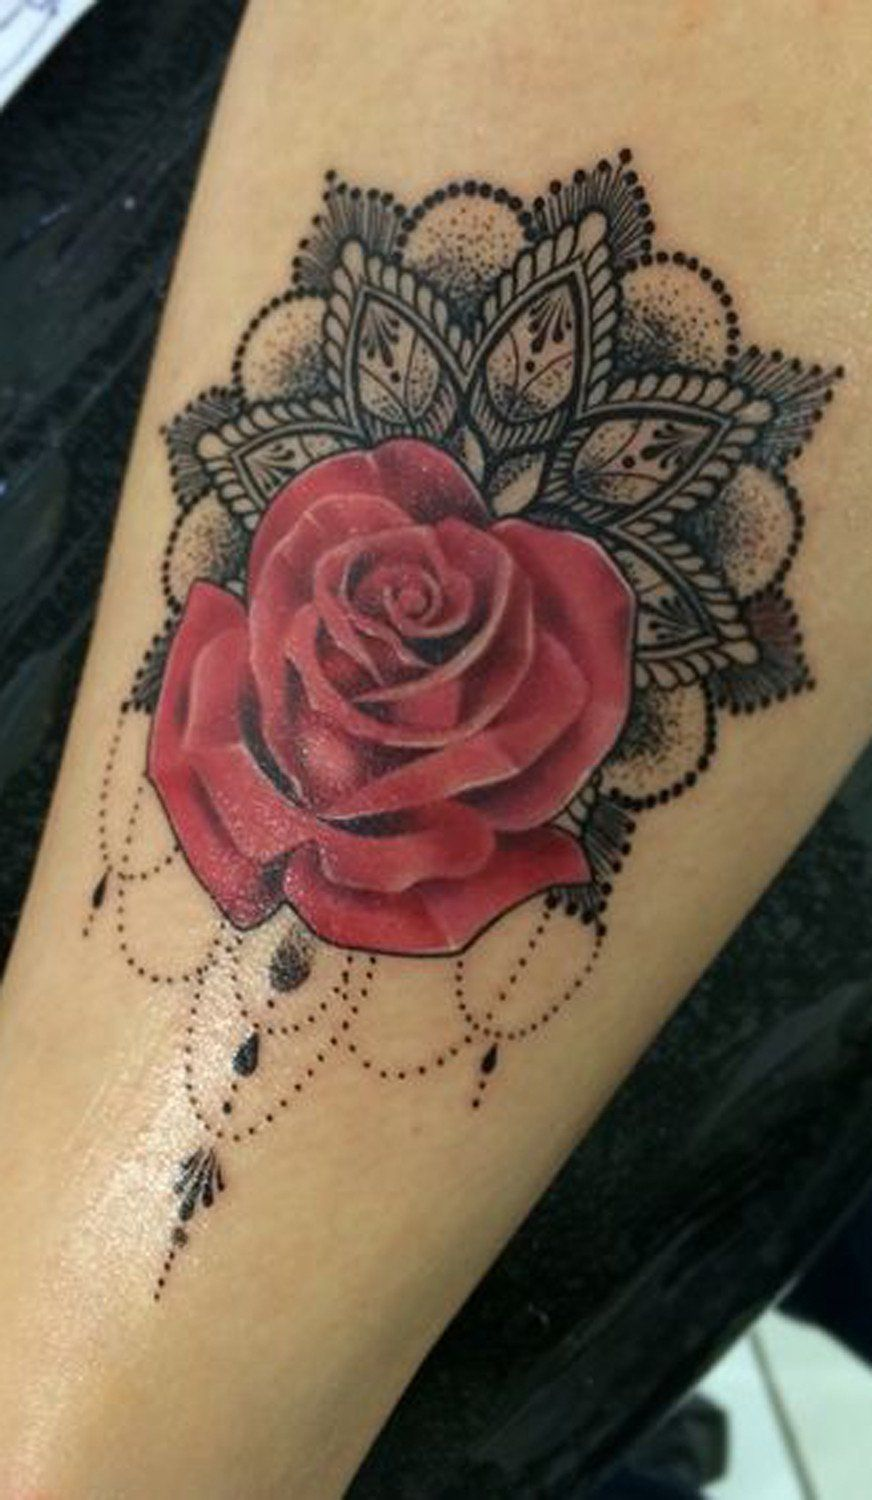 250 Amazing Rose Tattoo Designs With Meanings Ideas And Celebrities Body Art Guru